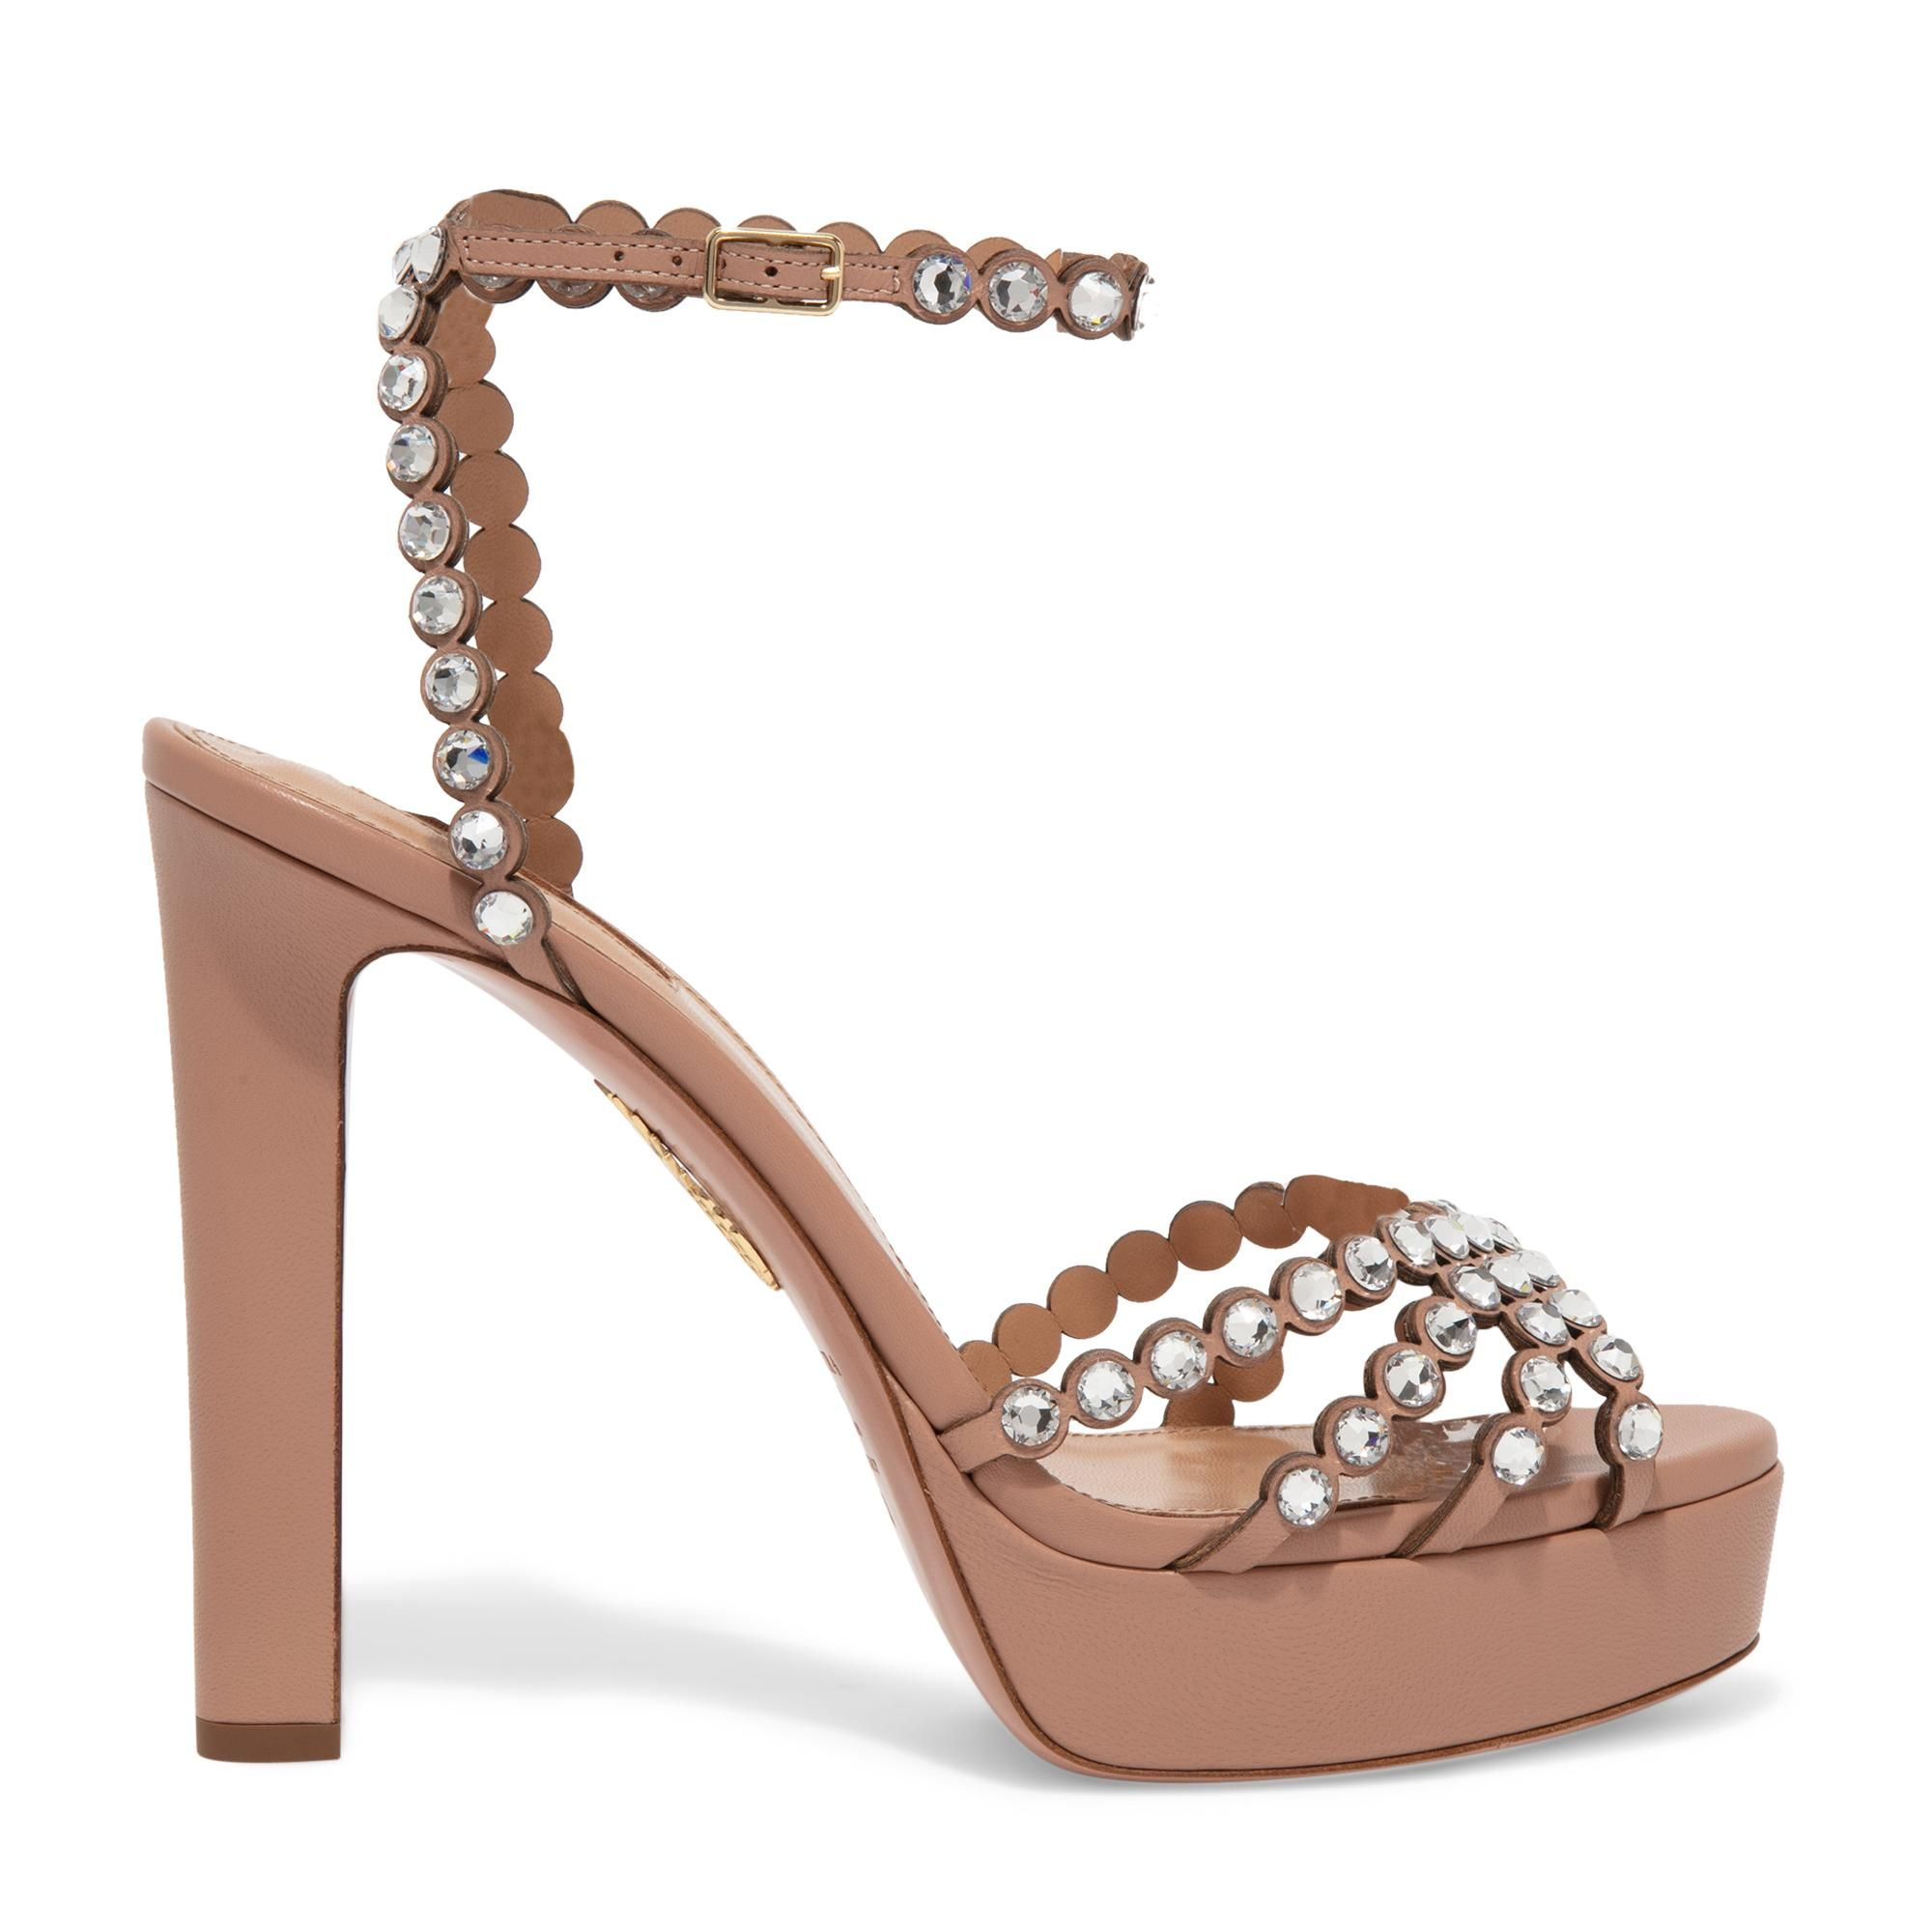 Tequila sandals